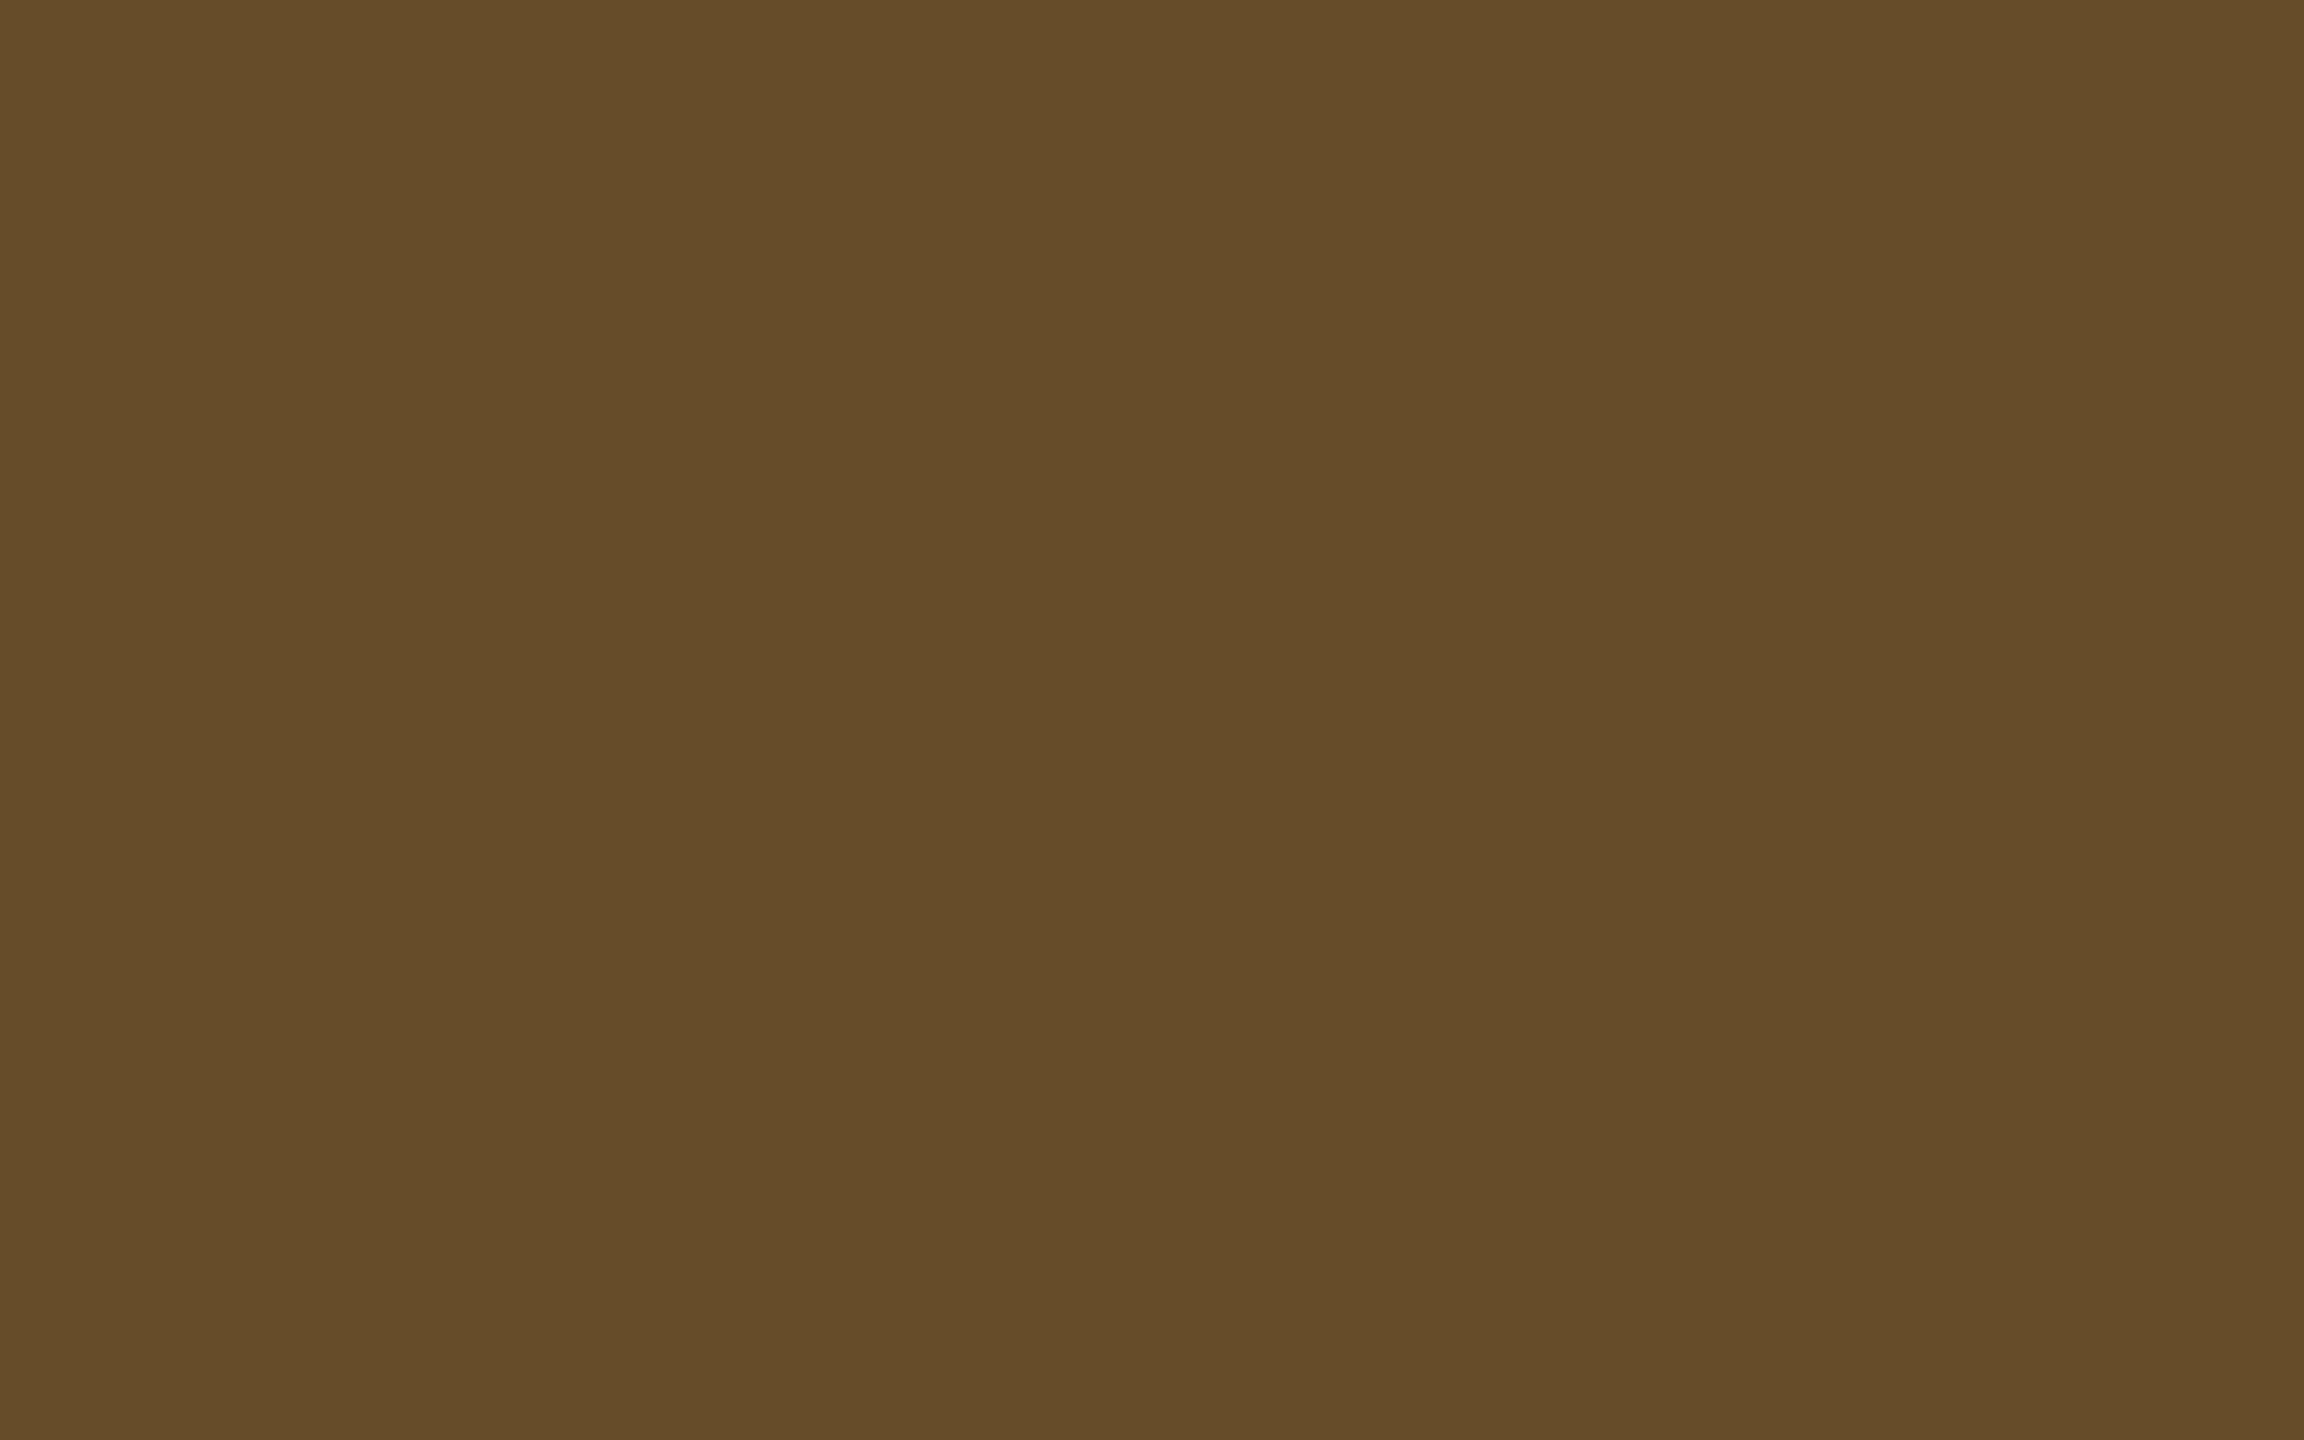 2304x1440 Donkey Brown Solid Color Background